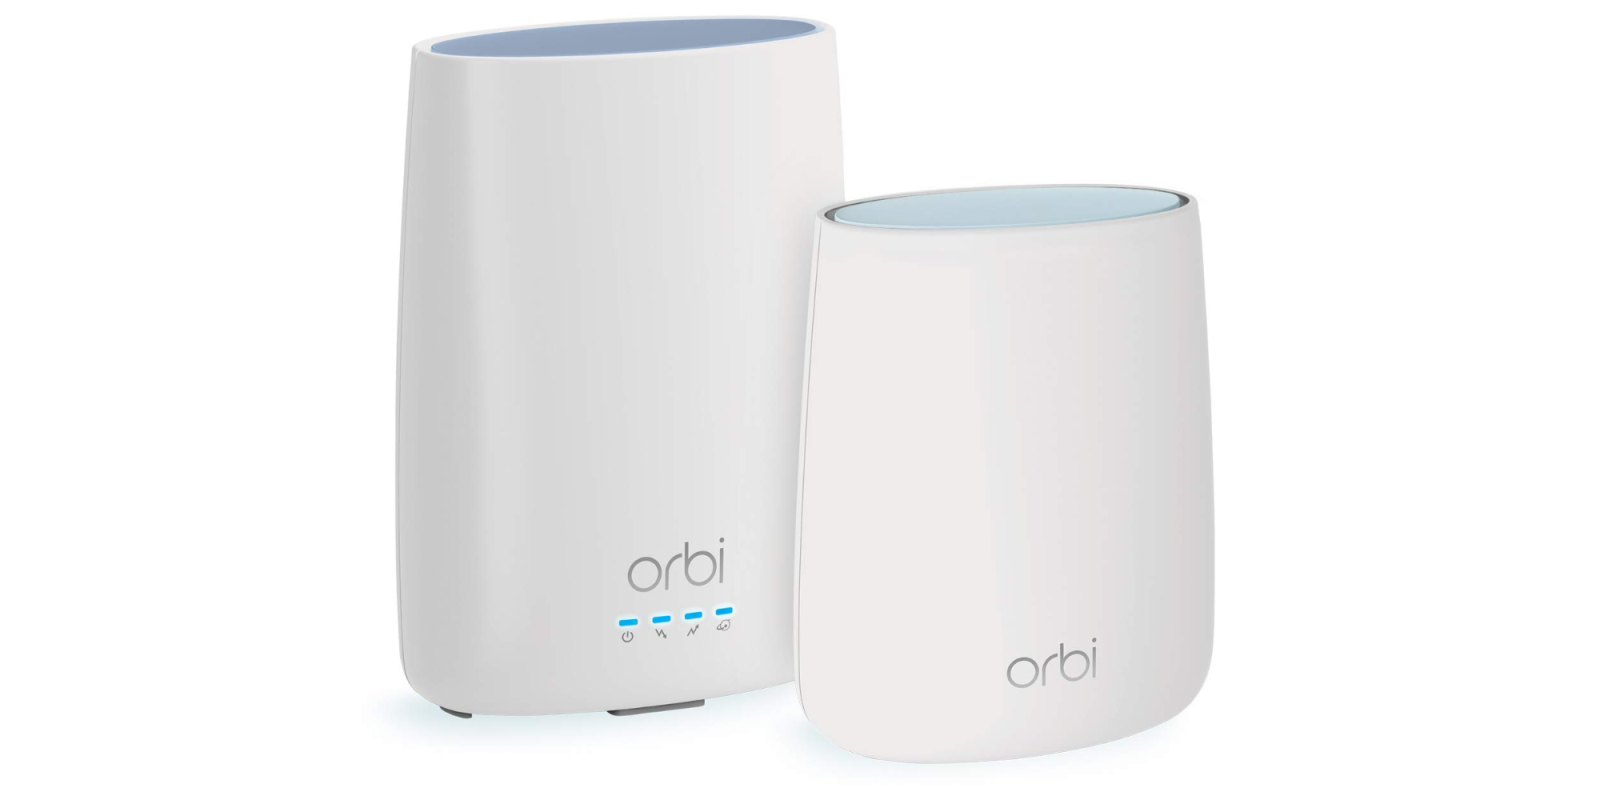 NETGEAR's Orbi Mesh 802.11ac System has a built-in DOCSIS 3.0 Modem at $310 ($90 off), more